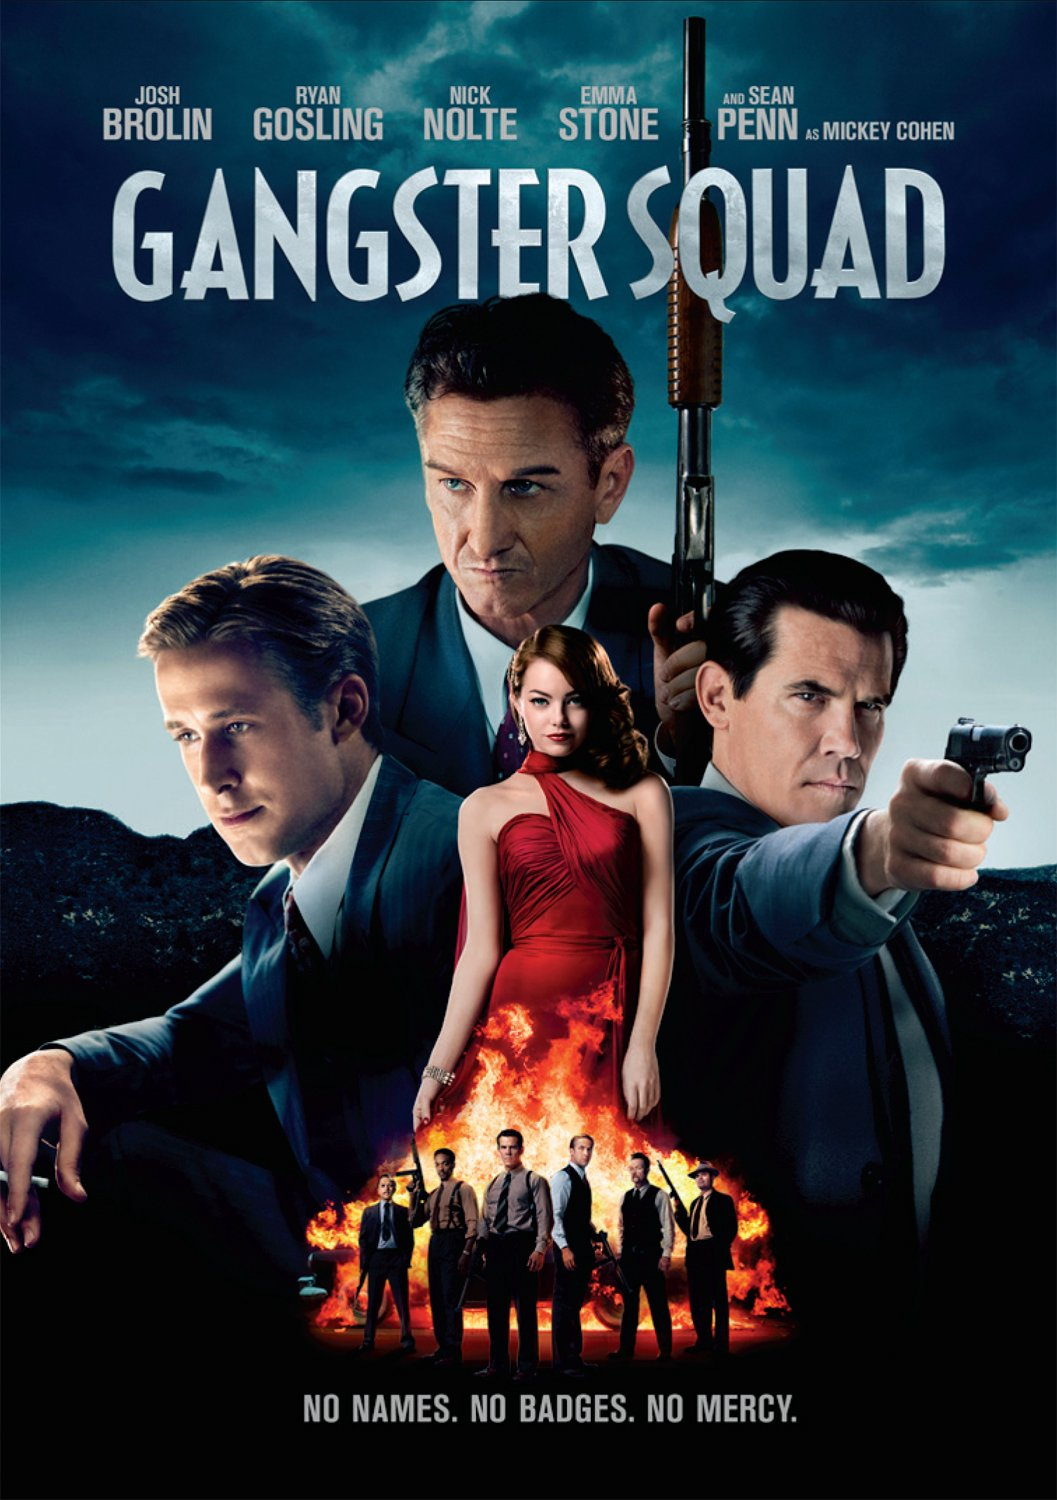 Gangster Squad Movie Poster.jpg